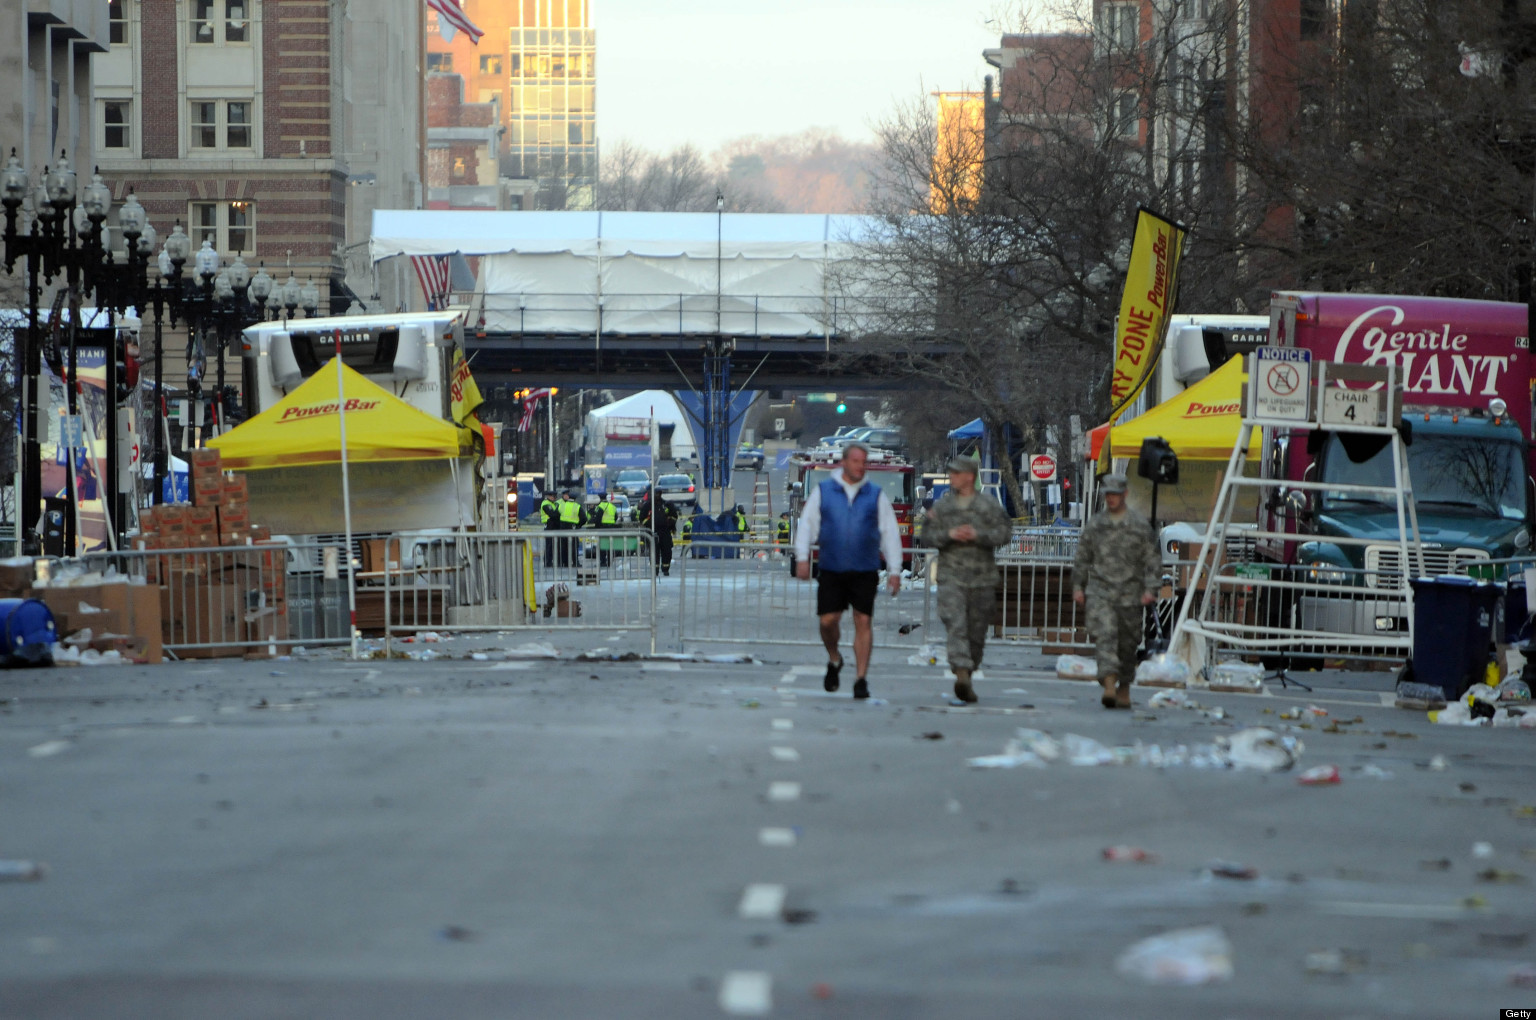 Reports: Man Questioned Over Marathon Bombings Killed By Police